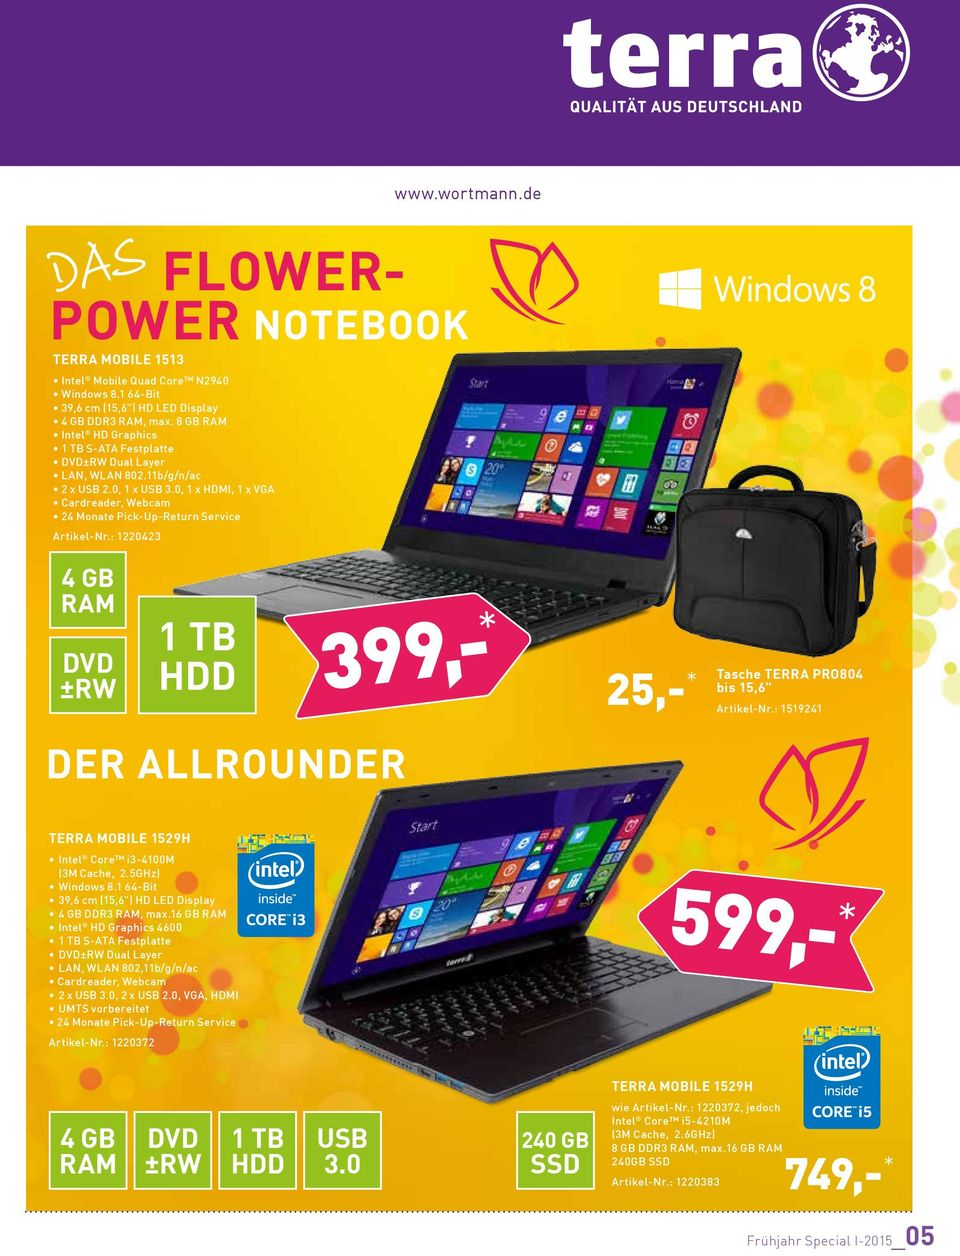 ": 1220423 DVD ±RW DER ALLROUNDER 399,- * 25,- * DURABLE up to 9 h LIGHT 1,6 kg THIN 19 mm BOOT < 7 sec. Tasche TERRA PRO804 bis 15,6"" Artikel-Nr."